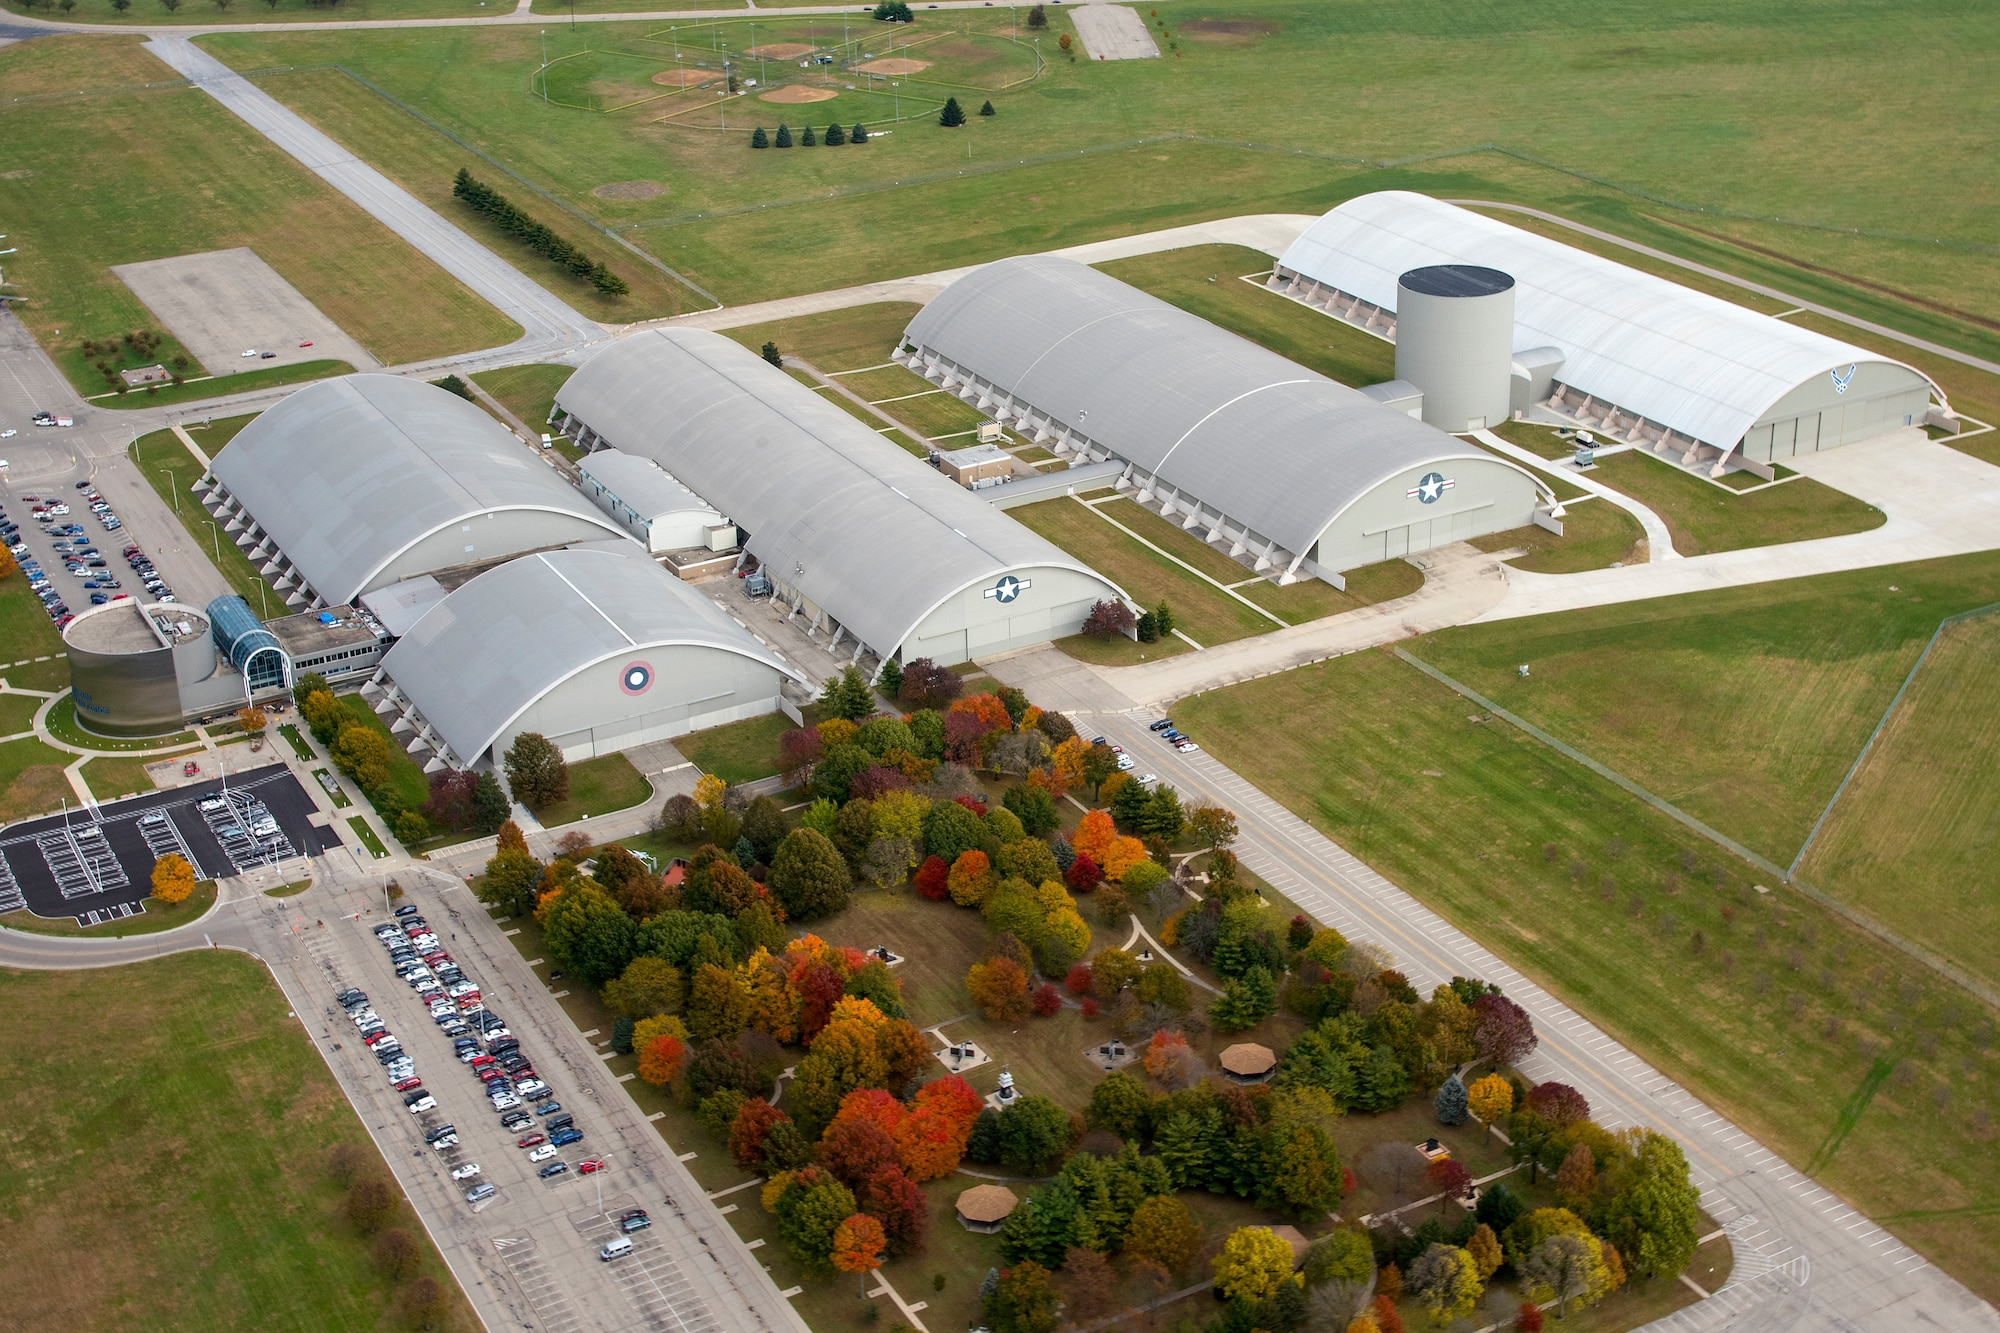 DAYTON, Ohio (10/2018) -- Aerial view of the National Museum of the U.S. Air Force. The museum collects, researches, conserves, interprets and presents the Air Force's history, heritage and traditions, as well as today's mission to fly, fight and win...in Air, Space and Cyberspace to a global audience through engaging exhibits, educational outreach, special programs, and the stewardship of the national historic collection. (U.S. Air Force photo by Ken LaRock, pilot Matt Kiefer)